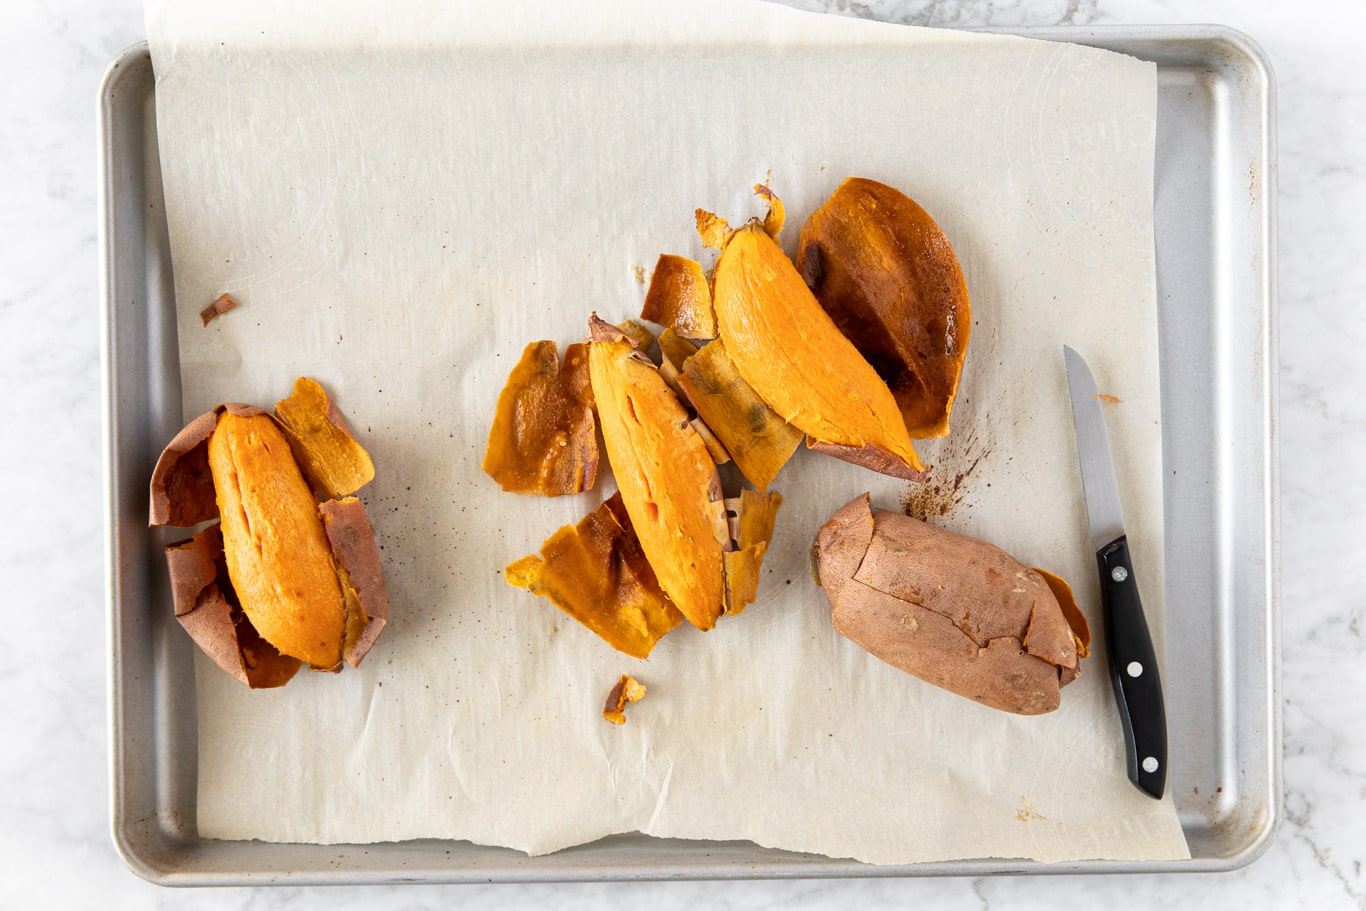 Baking sheet with peeled, roasted sweet potatoes